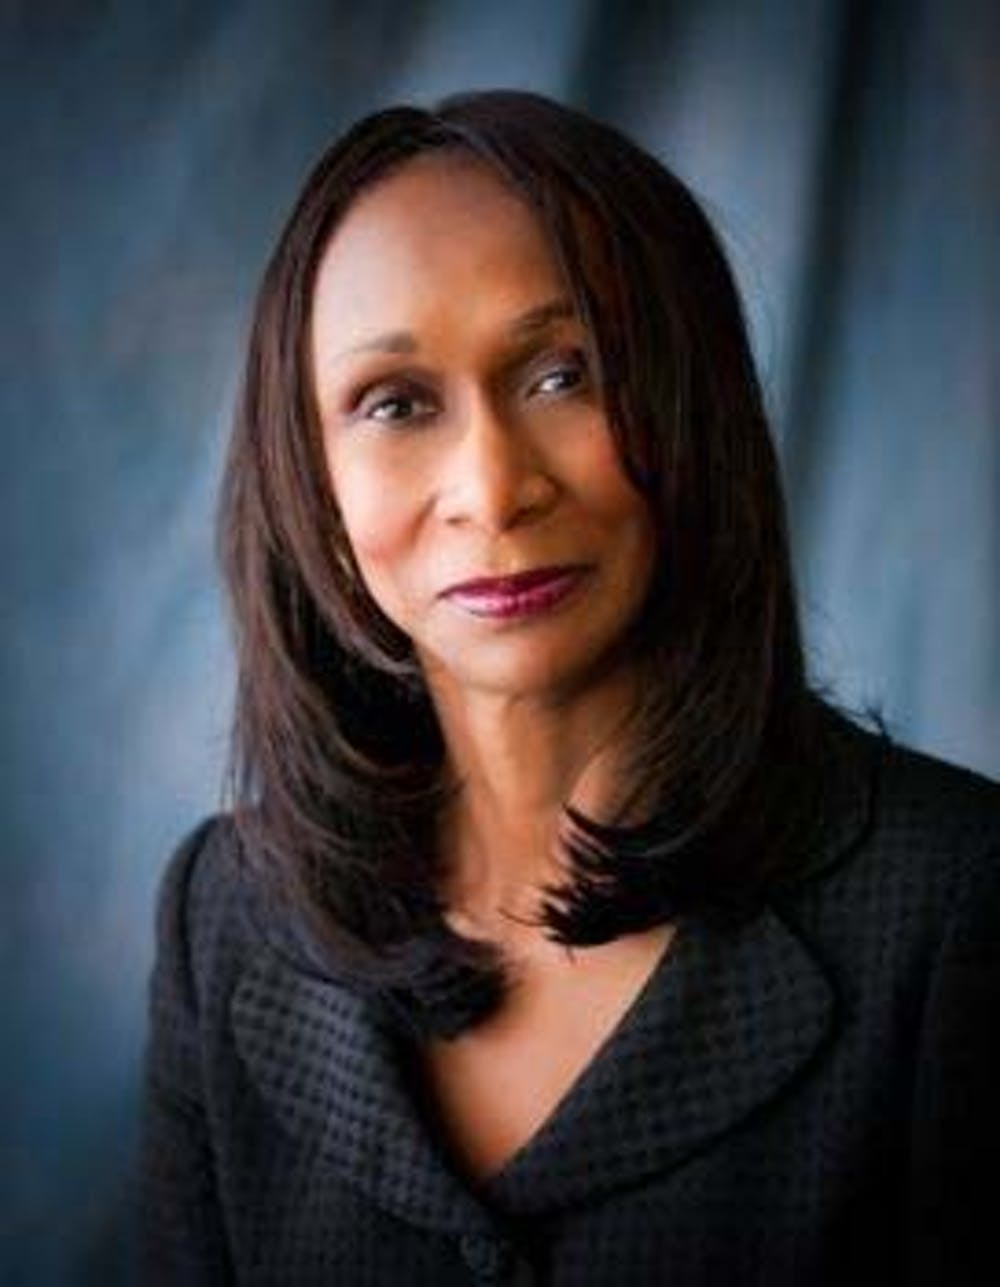 <p>Miami alumna and activist Carolyn Jefferson-Jenkins will be the 2021 Commencement speaker. </p><p><br/><br/><br/> </p>